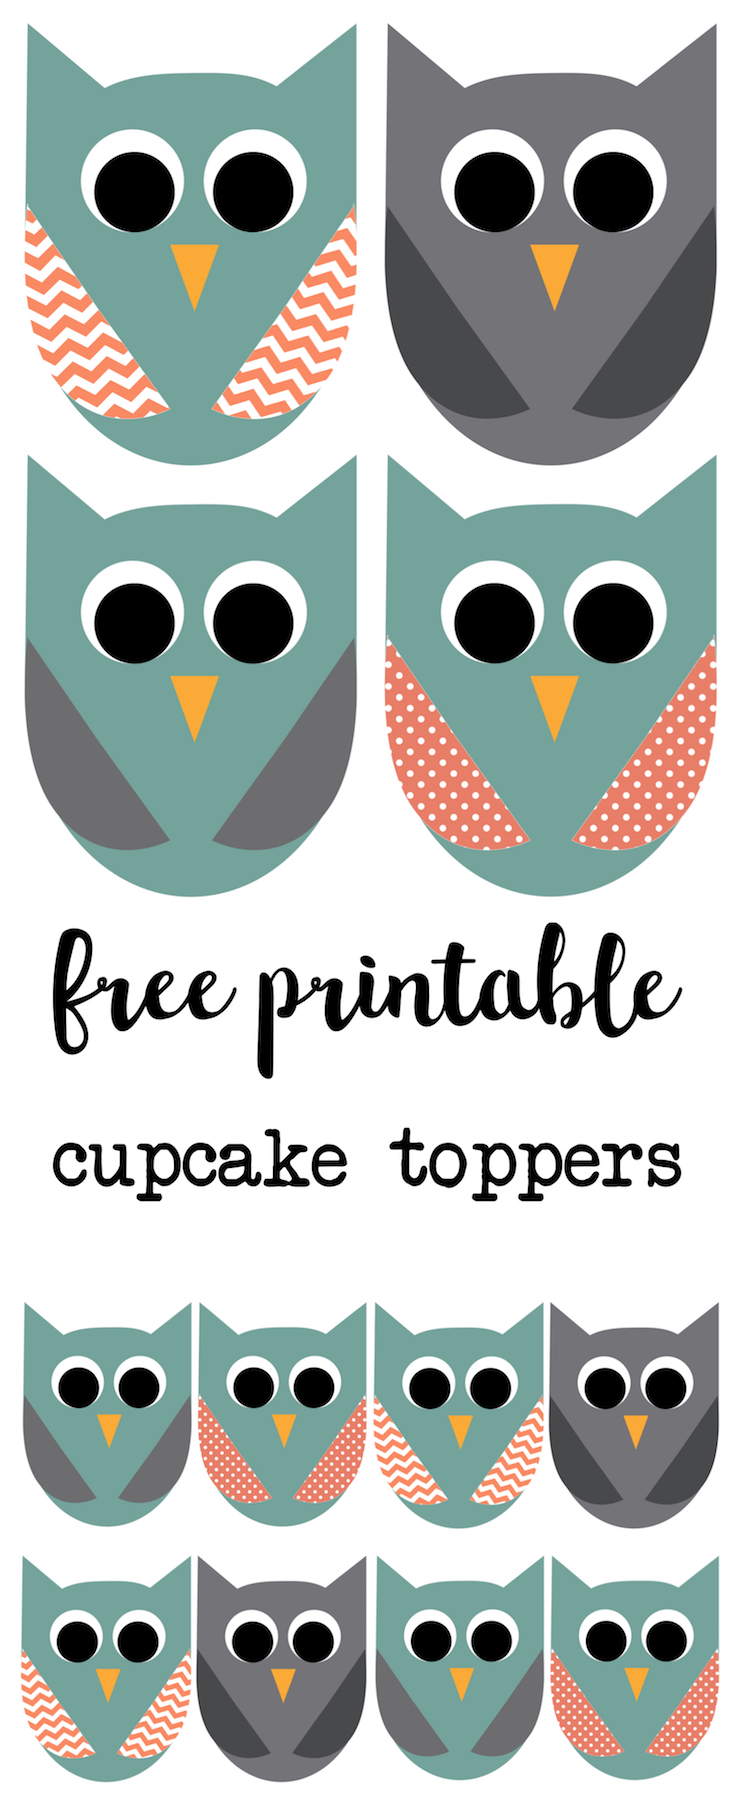 Owl cupcake toppers free printable. Free printable owl cupcake toppers perfect for an owl birthday party or owl baby shower decor.